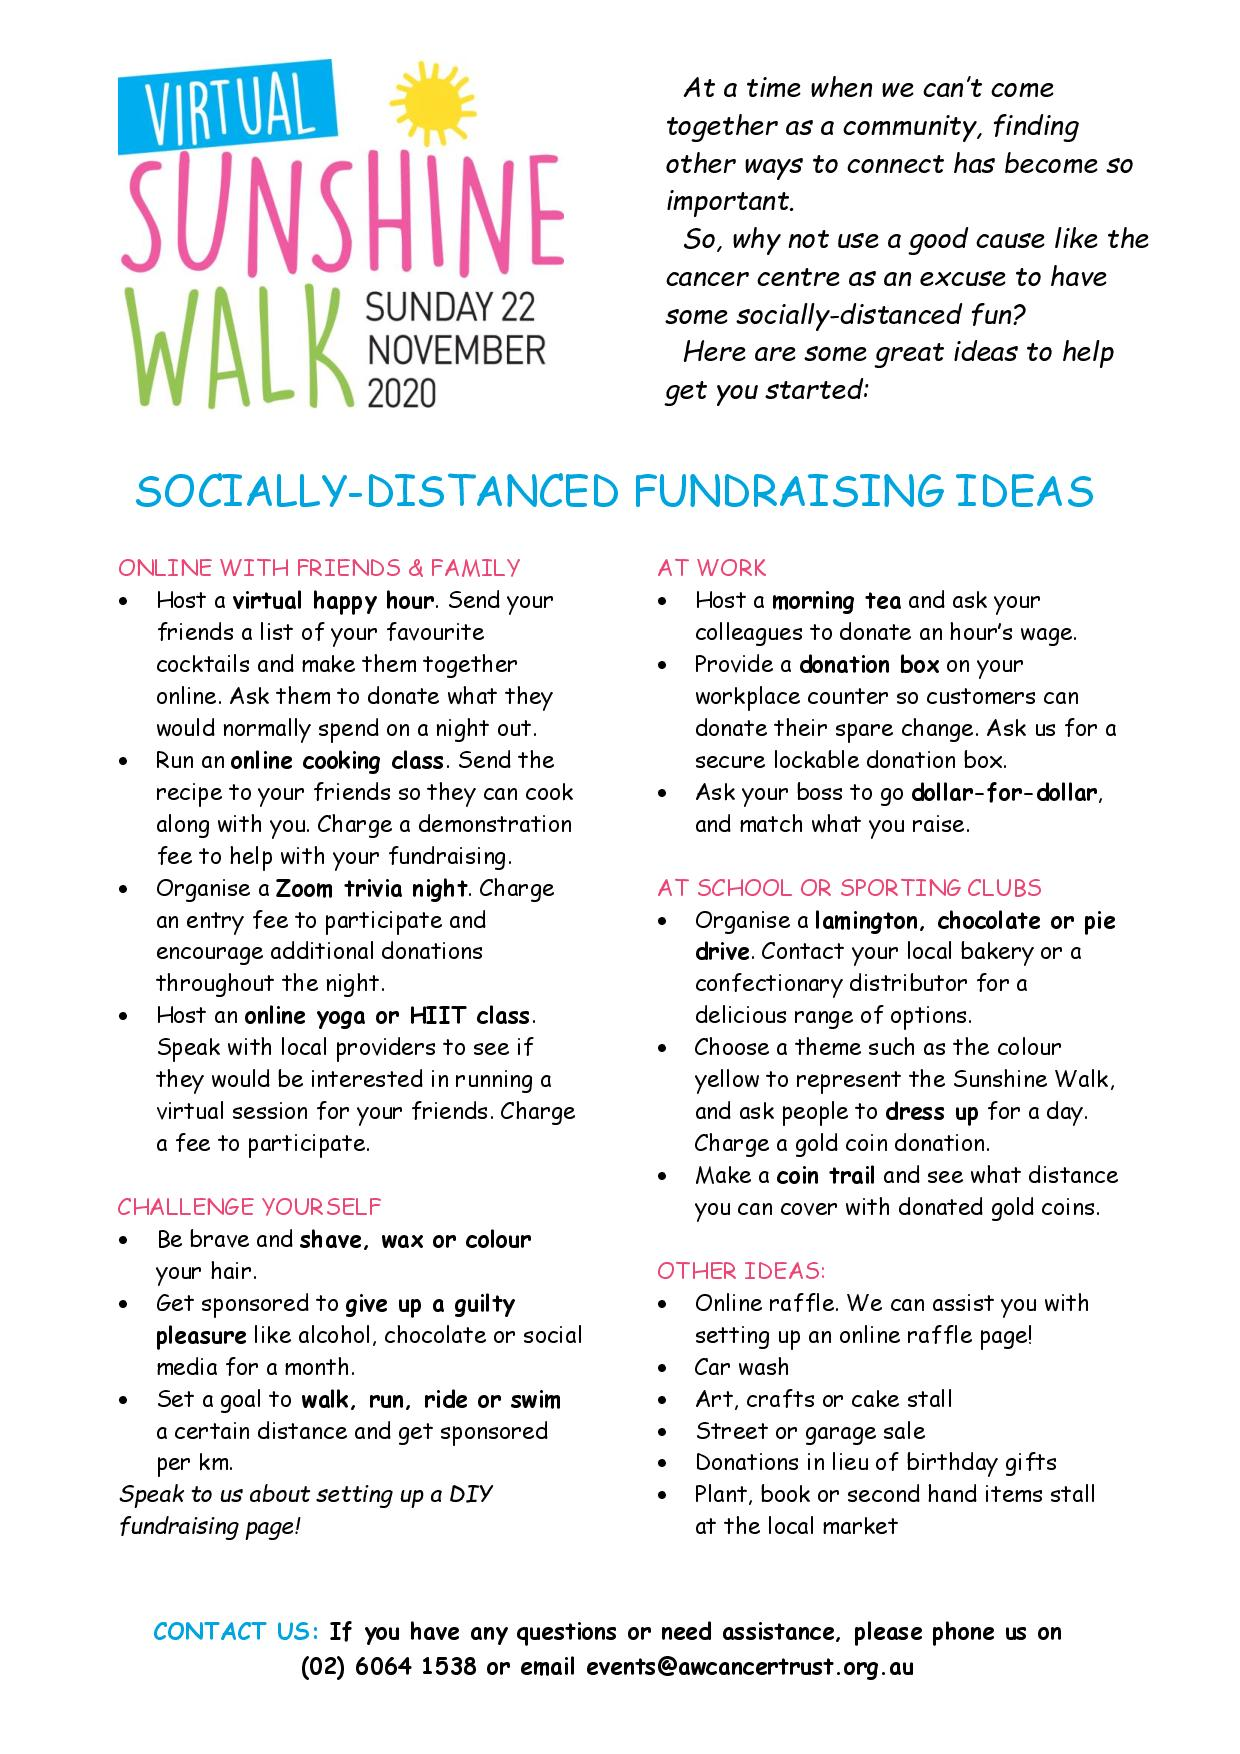 Socially-Distanced Fundraising Ideas